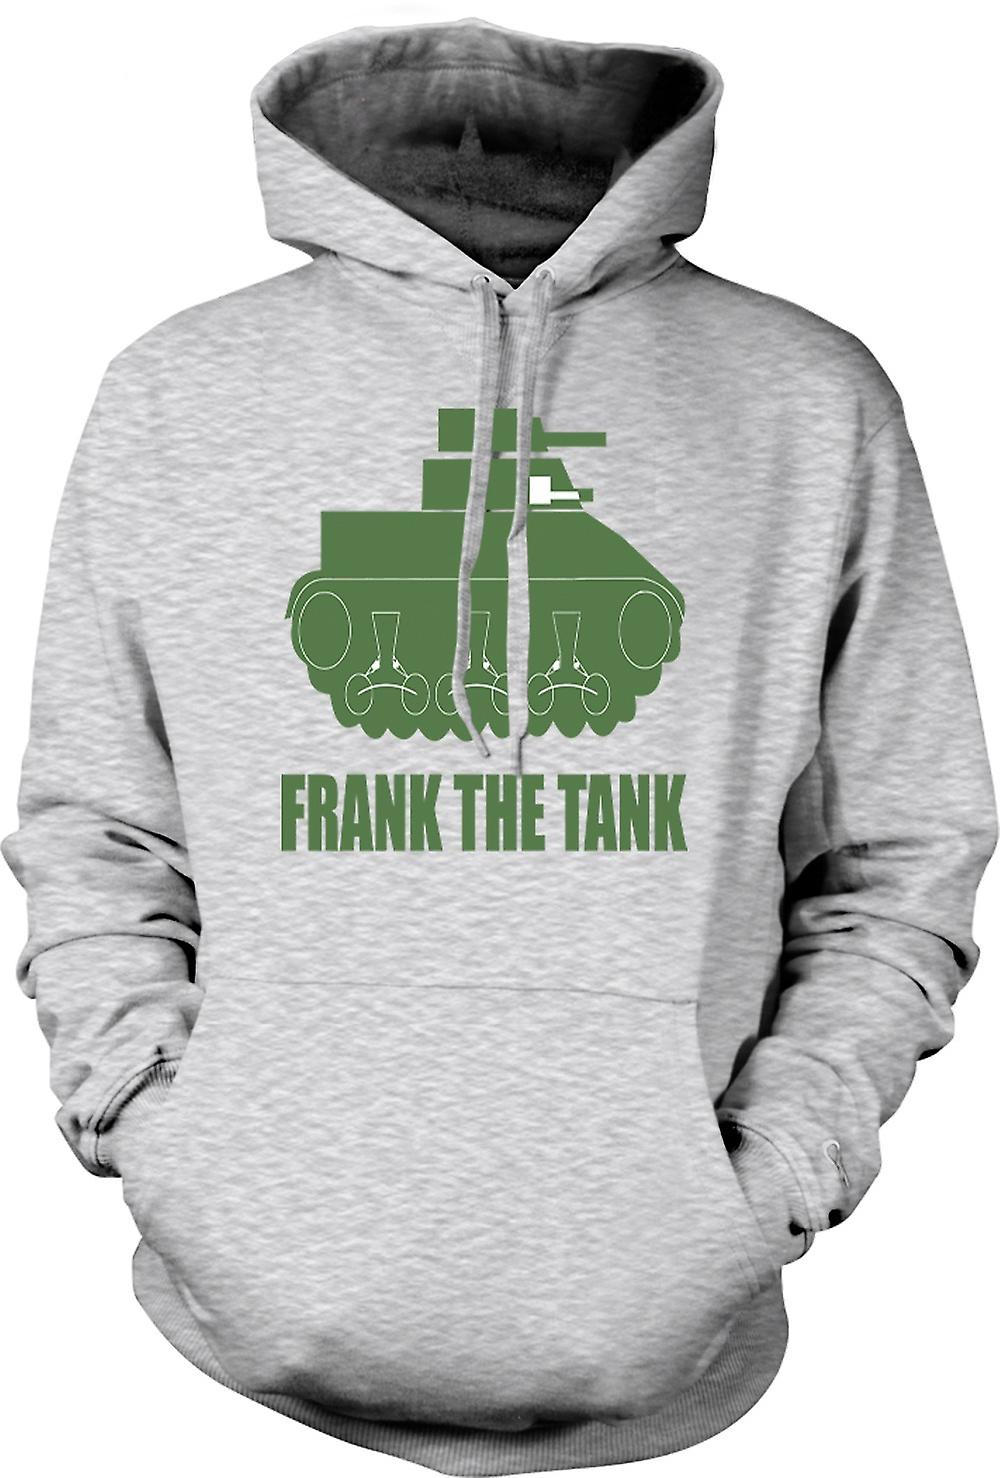 Mens Hoodie - Frank The Tank - Quote